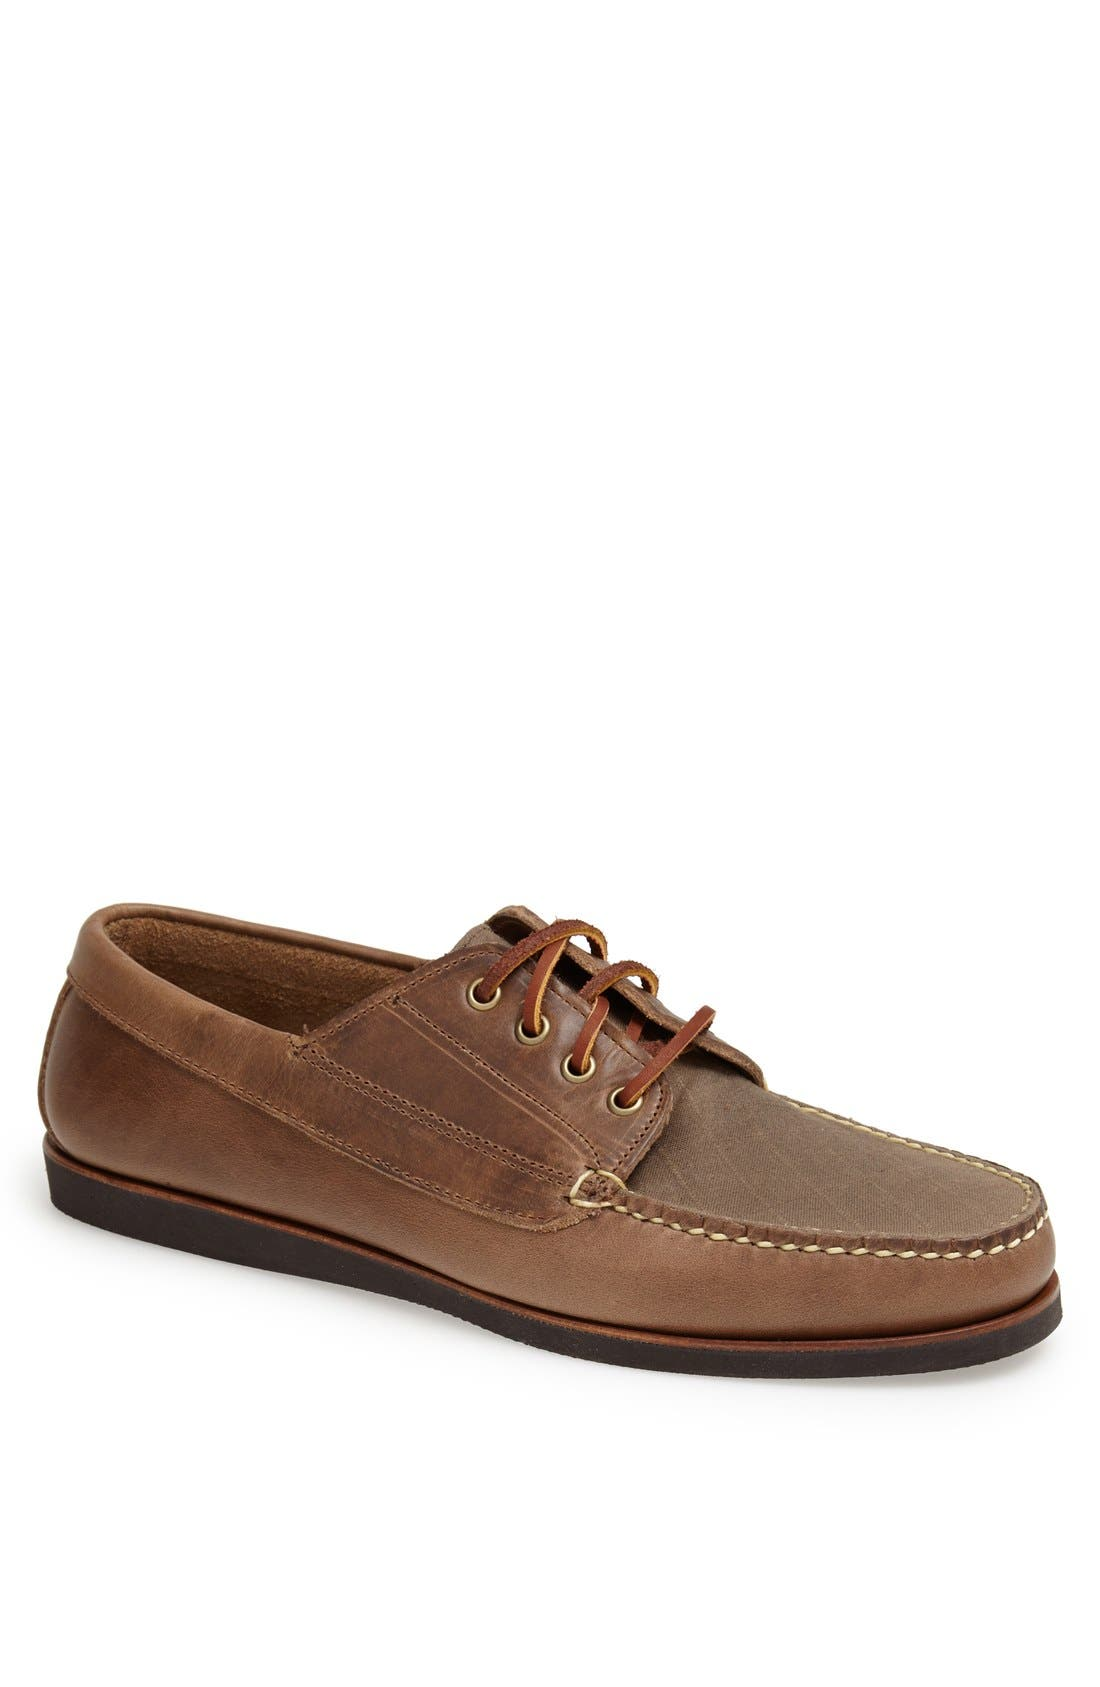 Main Image - Eastland Made in Maine 'Falmouth USA' Boat Shoe